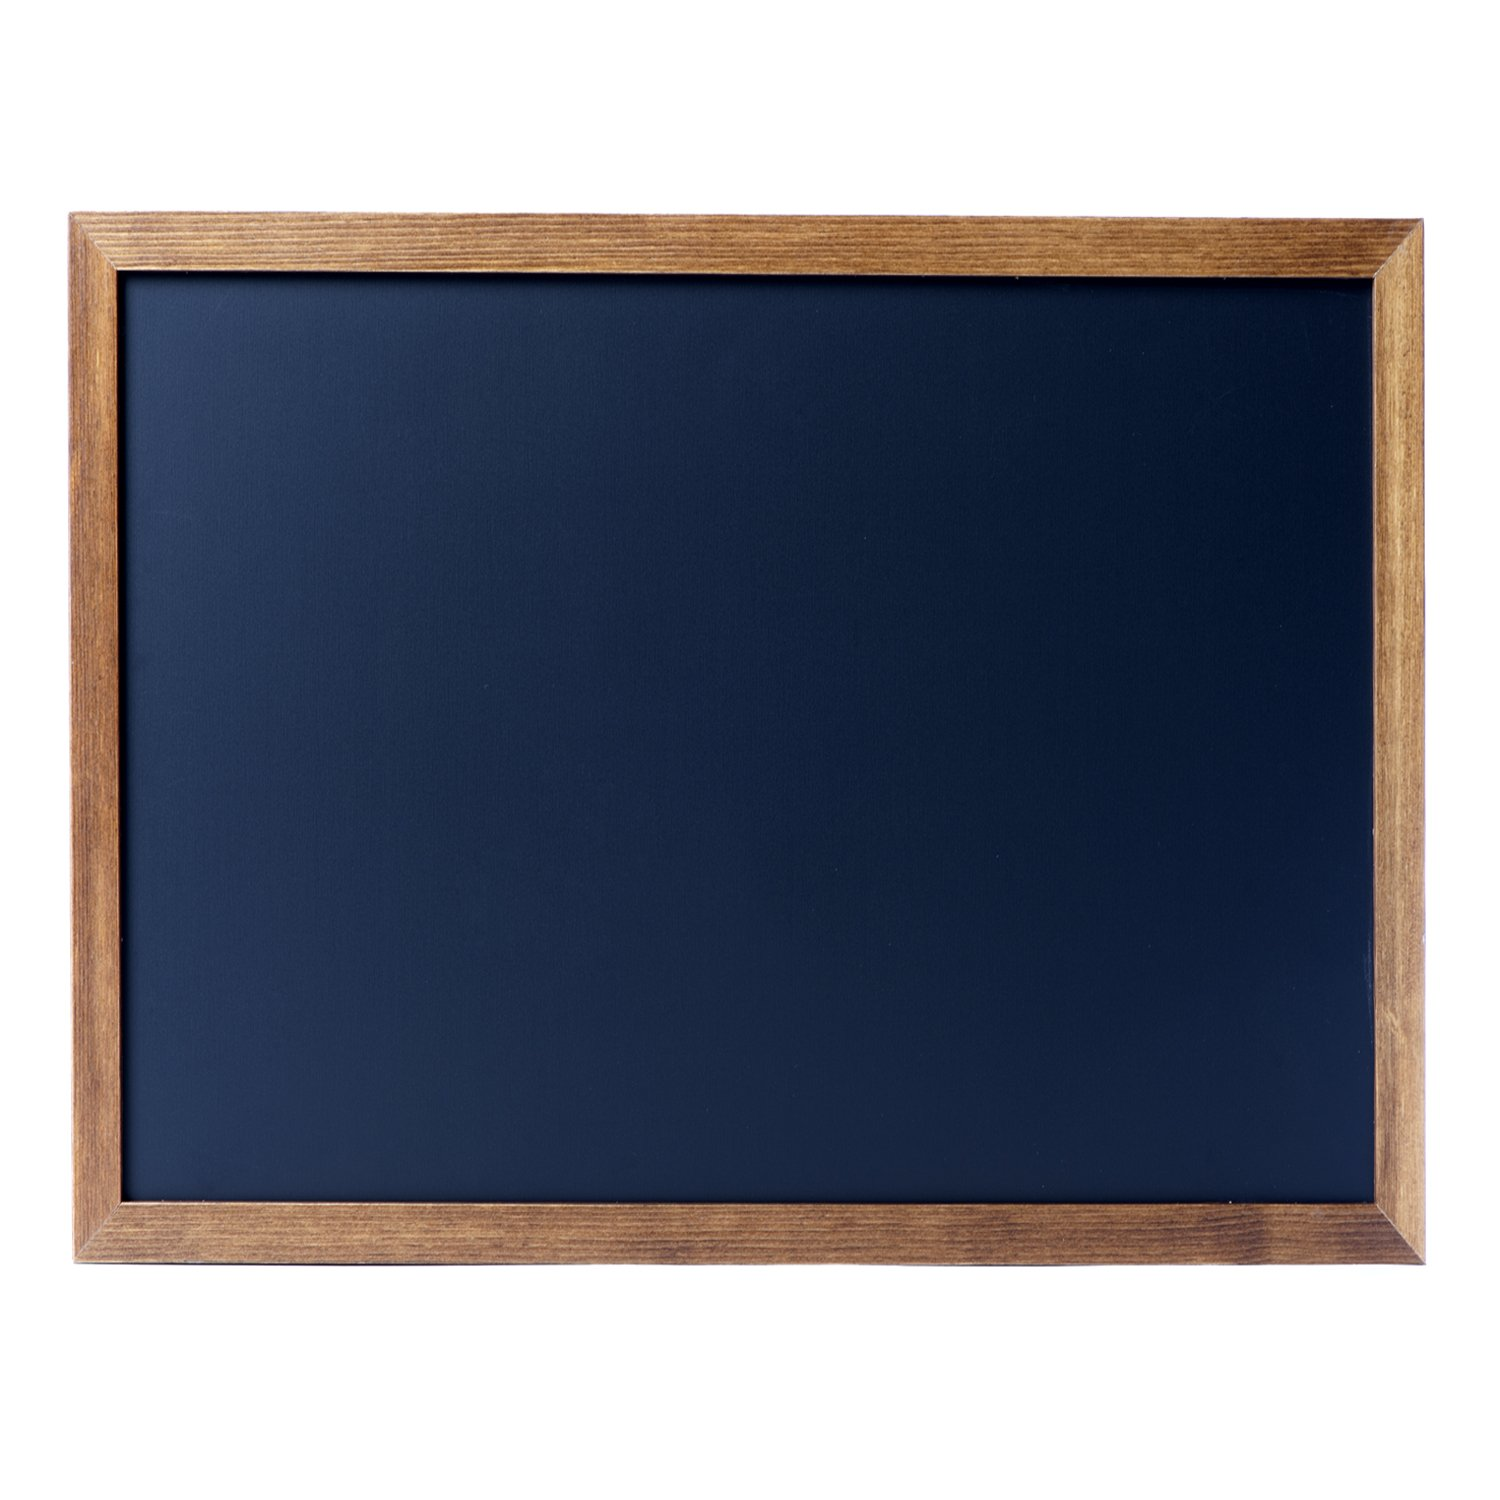 Cedar Markers 24''x18'' Chalkboard With Wooden Frame. 100% Non-Porous Erasable Blackboard and Whiteboard For Liquid Chalk Markers. Magnet Board Decorative Bulletin Board for Every Event (24x18)